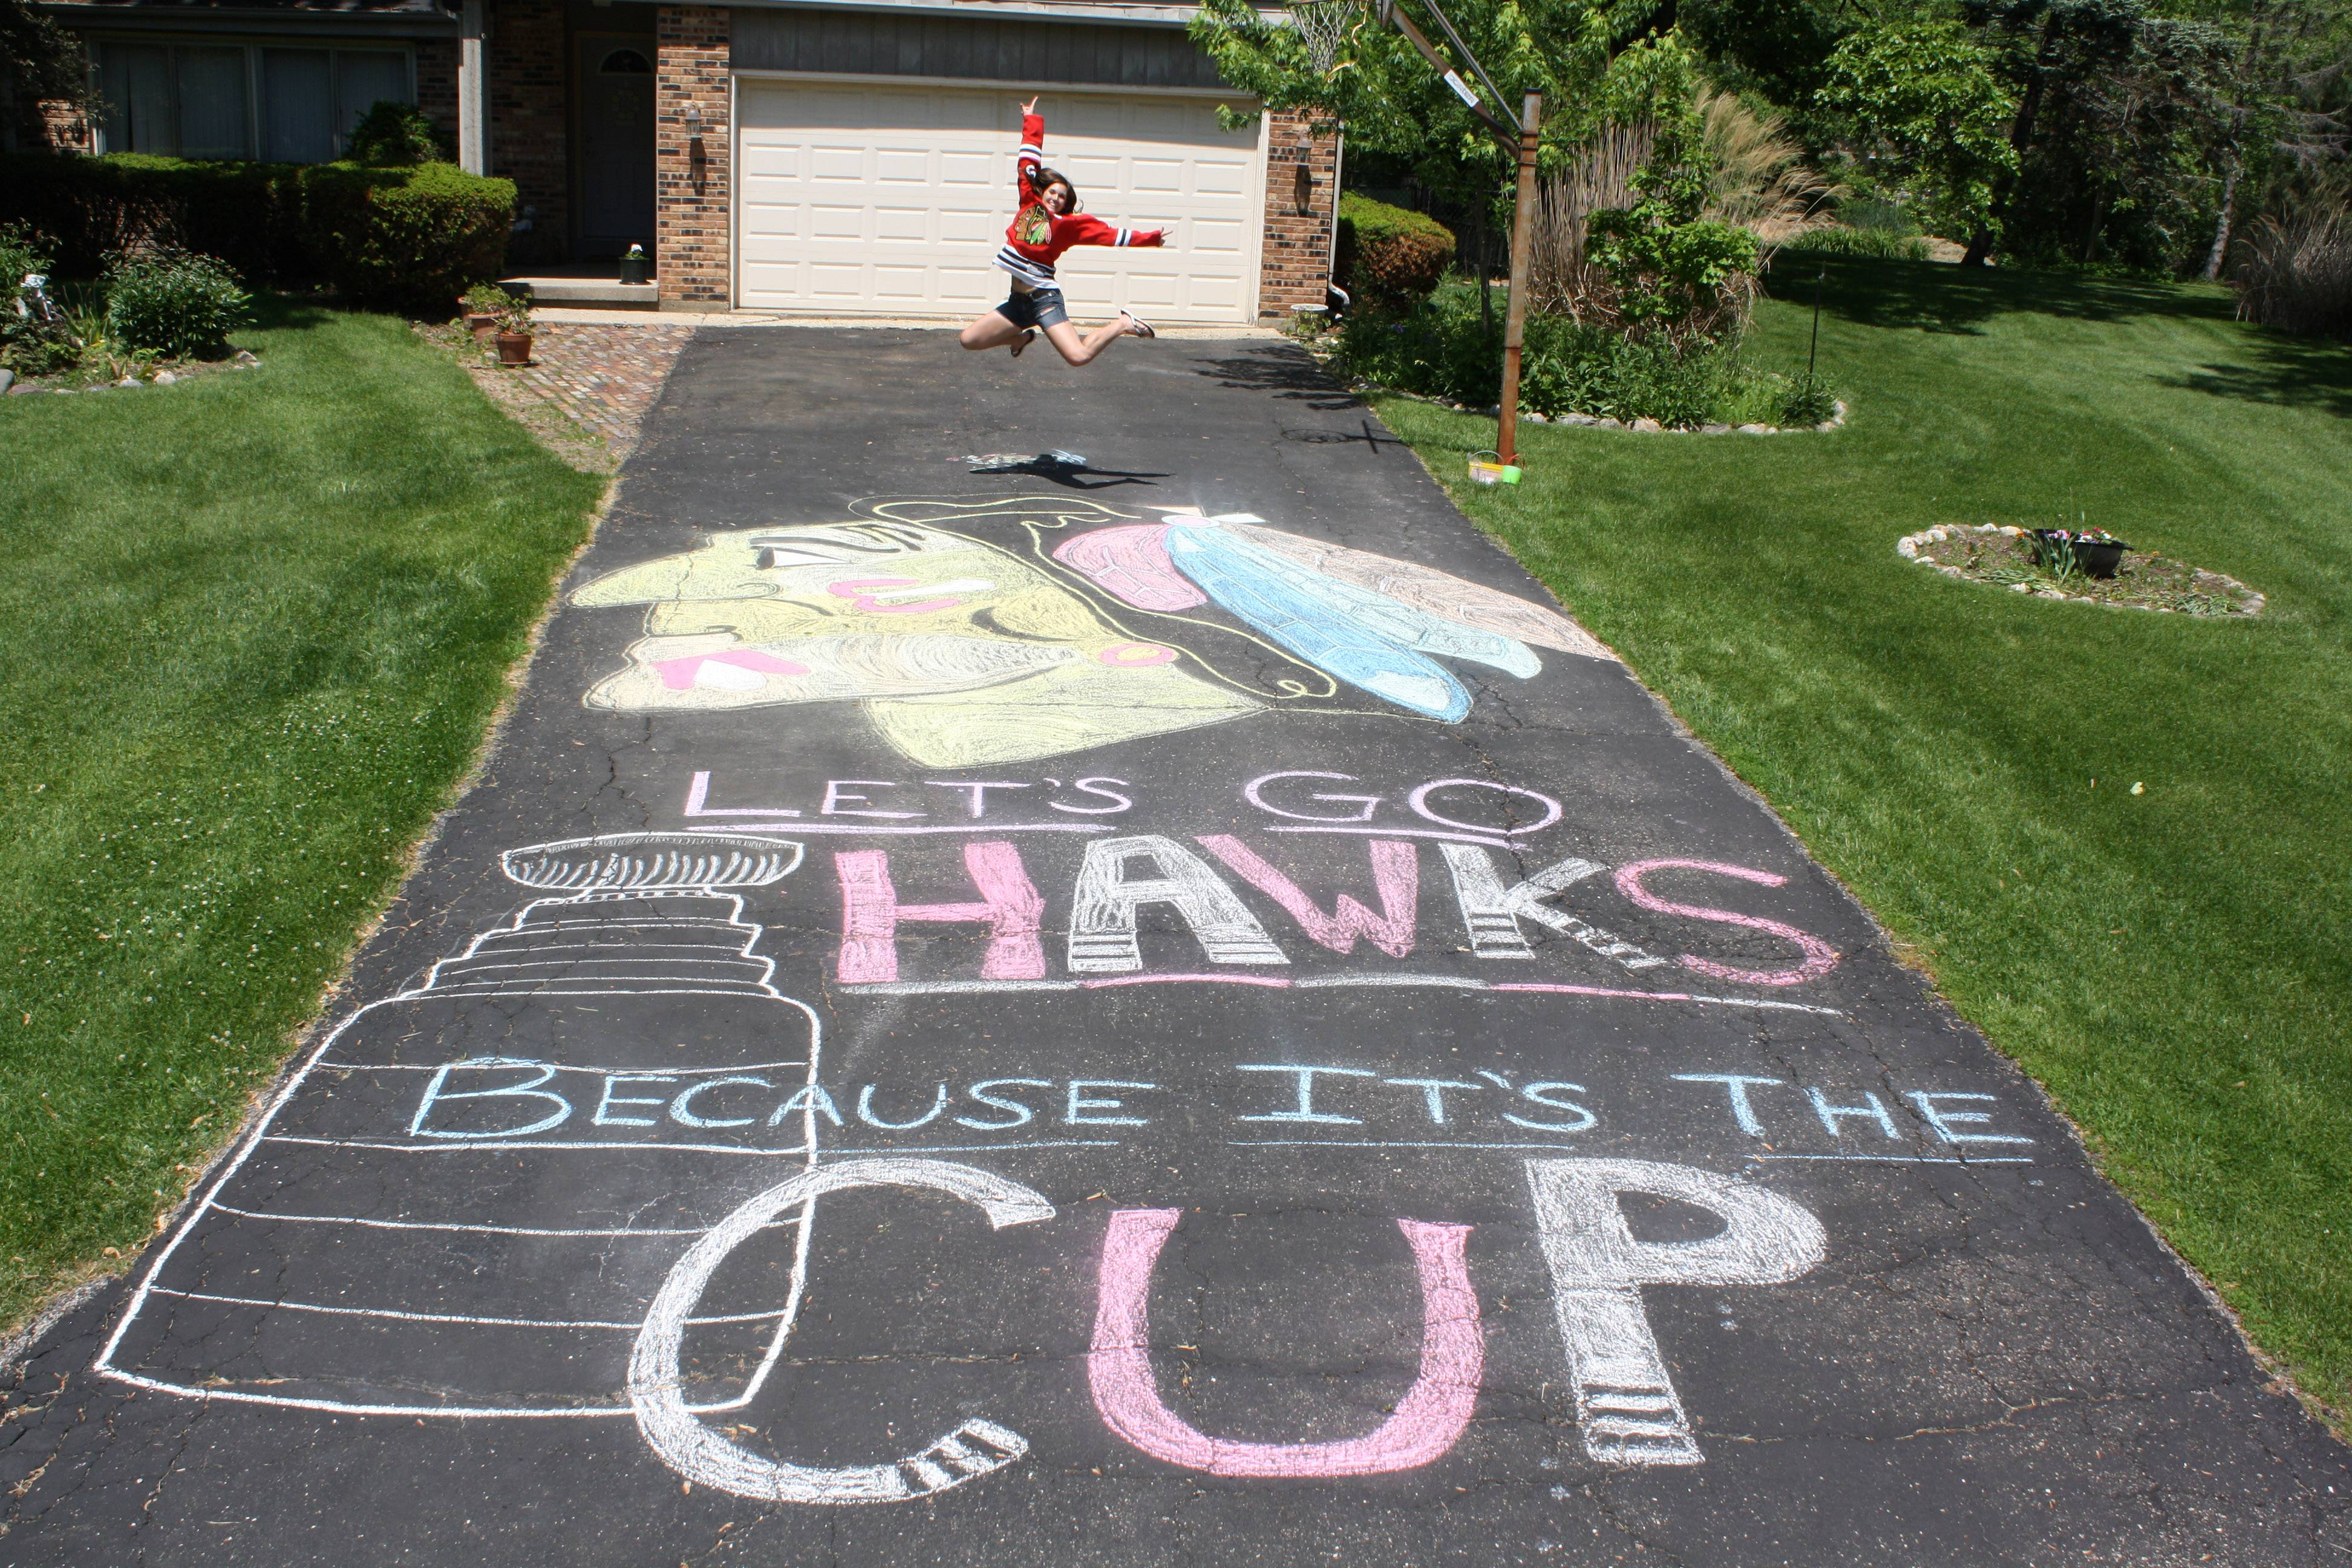 After going to the Blackhawk's game last Wednesday, my daughter who has been a fan for years, got inspired to show off her team spirit and loyalty! Her creativity ended up giving us one of the coolest and most popular driveways in the neighborhood!